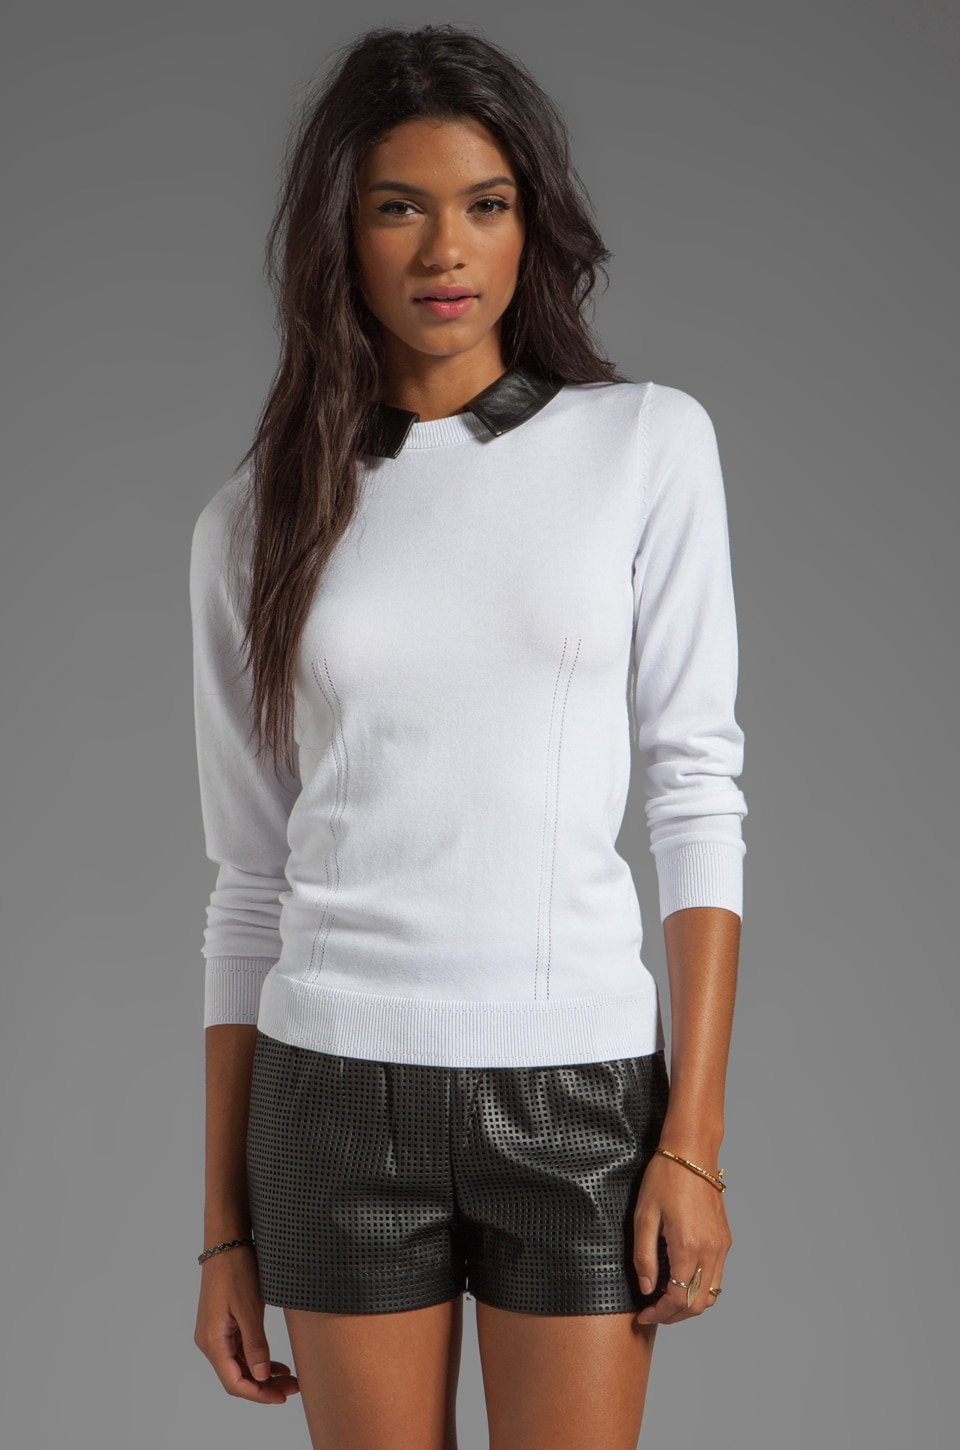 MILLY June Knits Leather Collar Sweater in White/Black